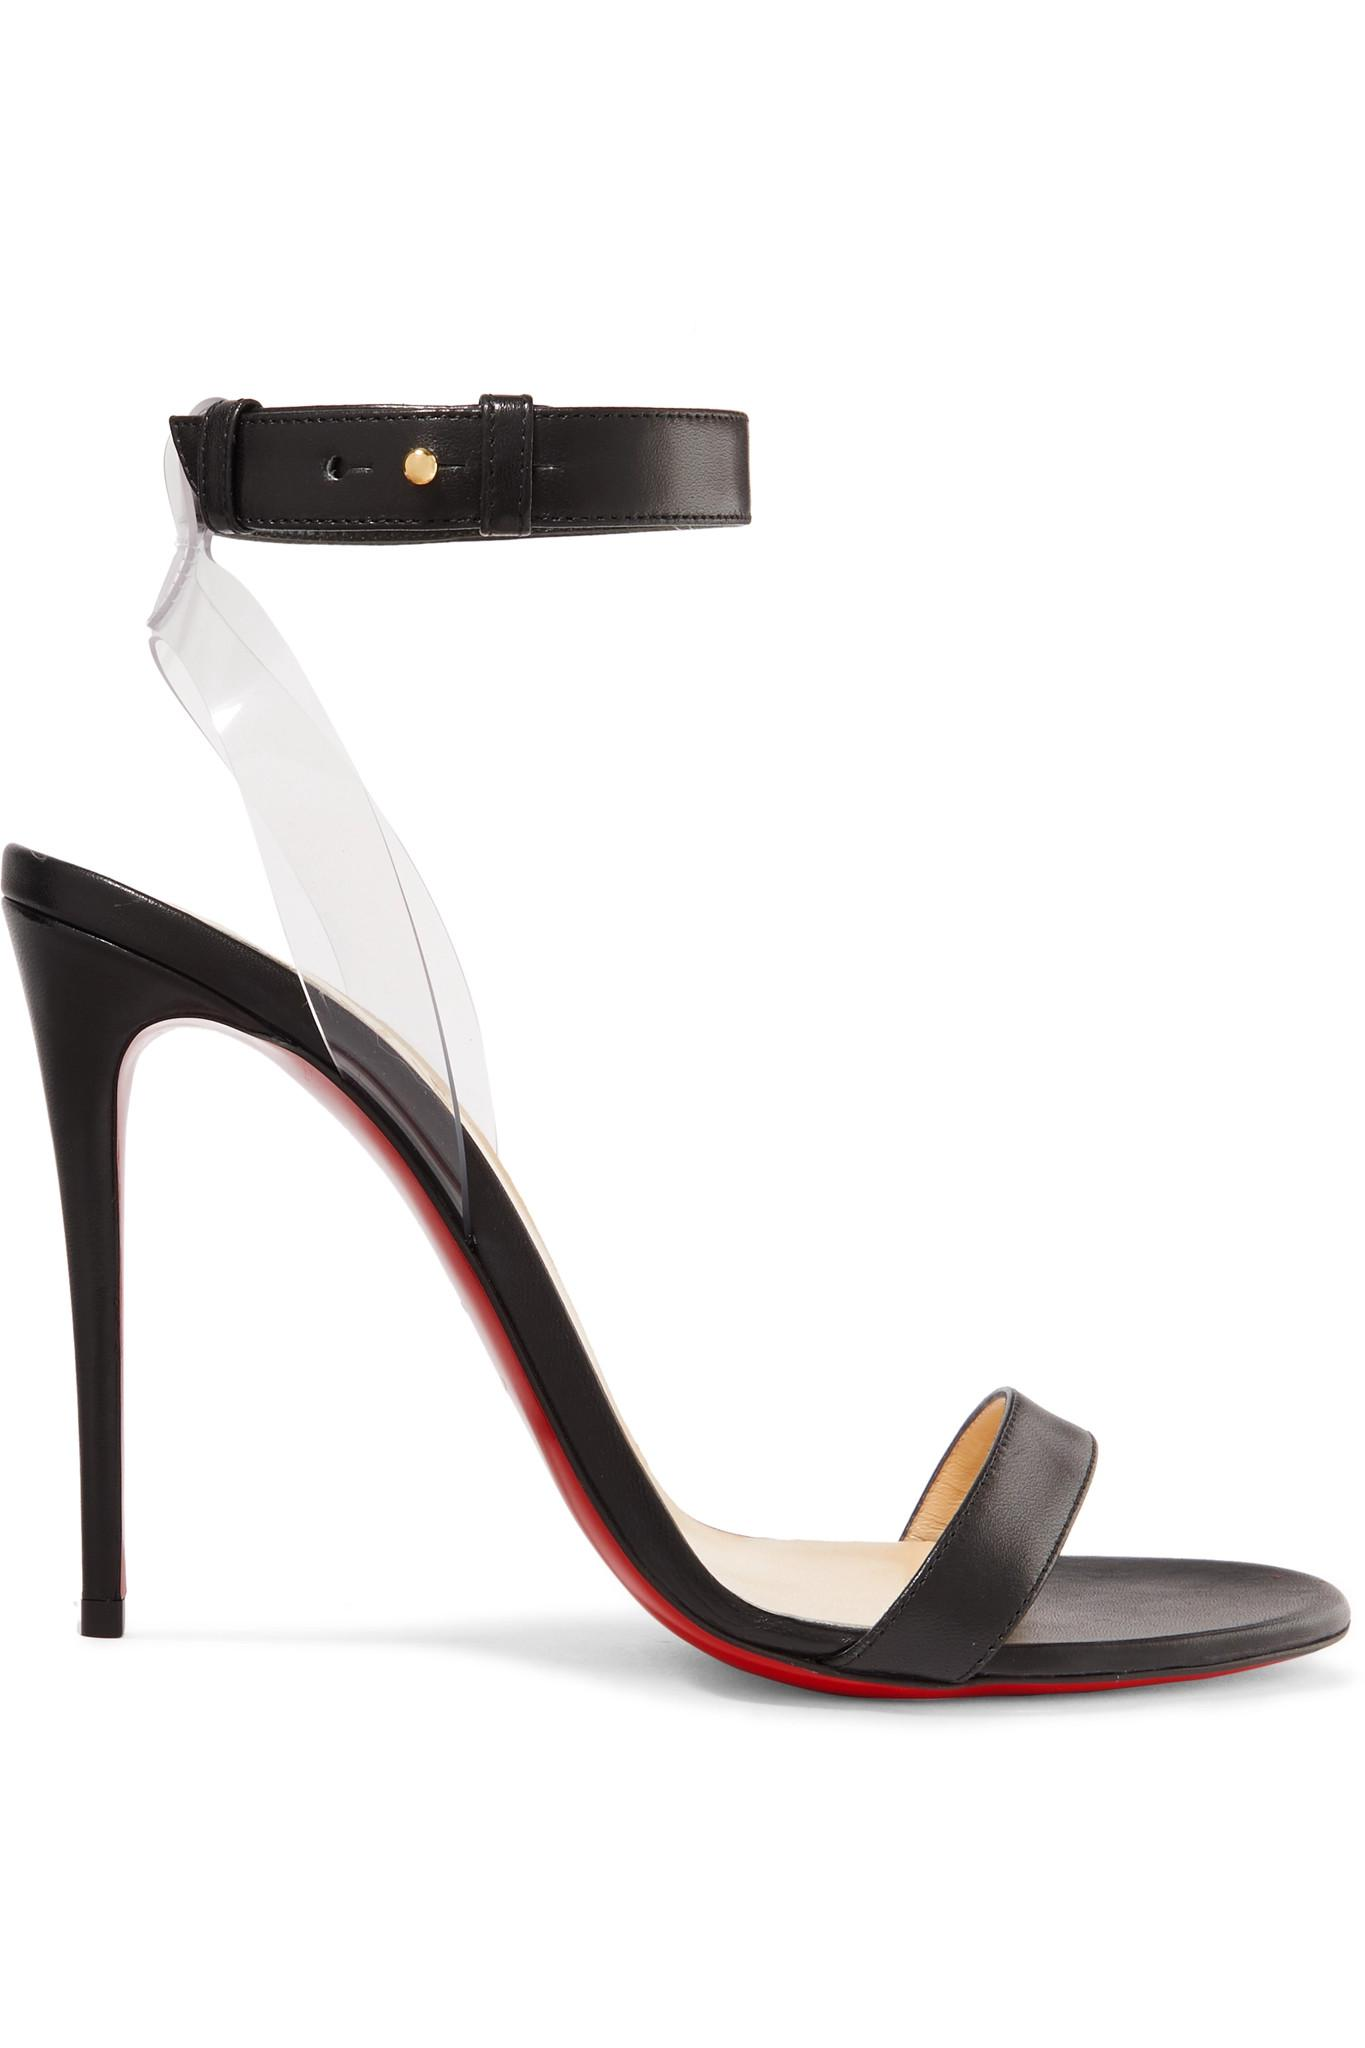 793efabe4e74 Lyst - Christian Louboutin Jonatina 100mm Leather Sandals in Black